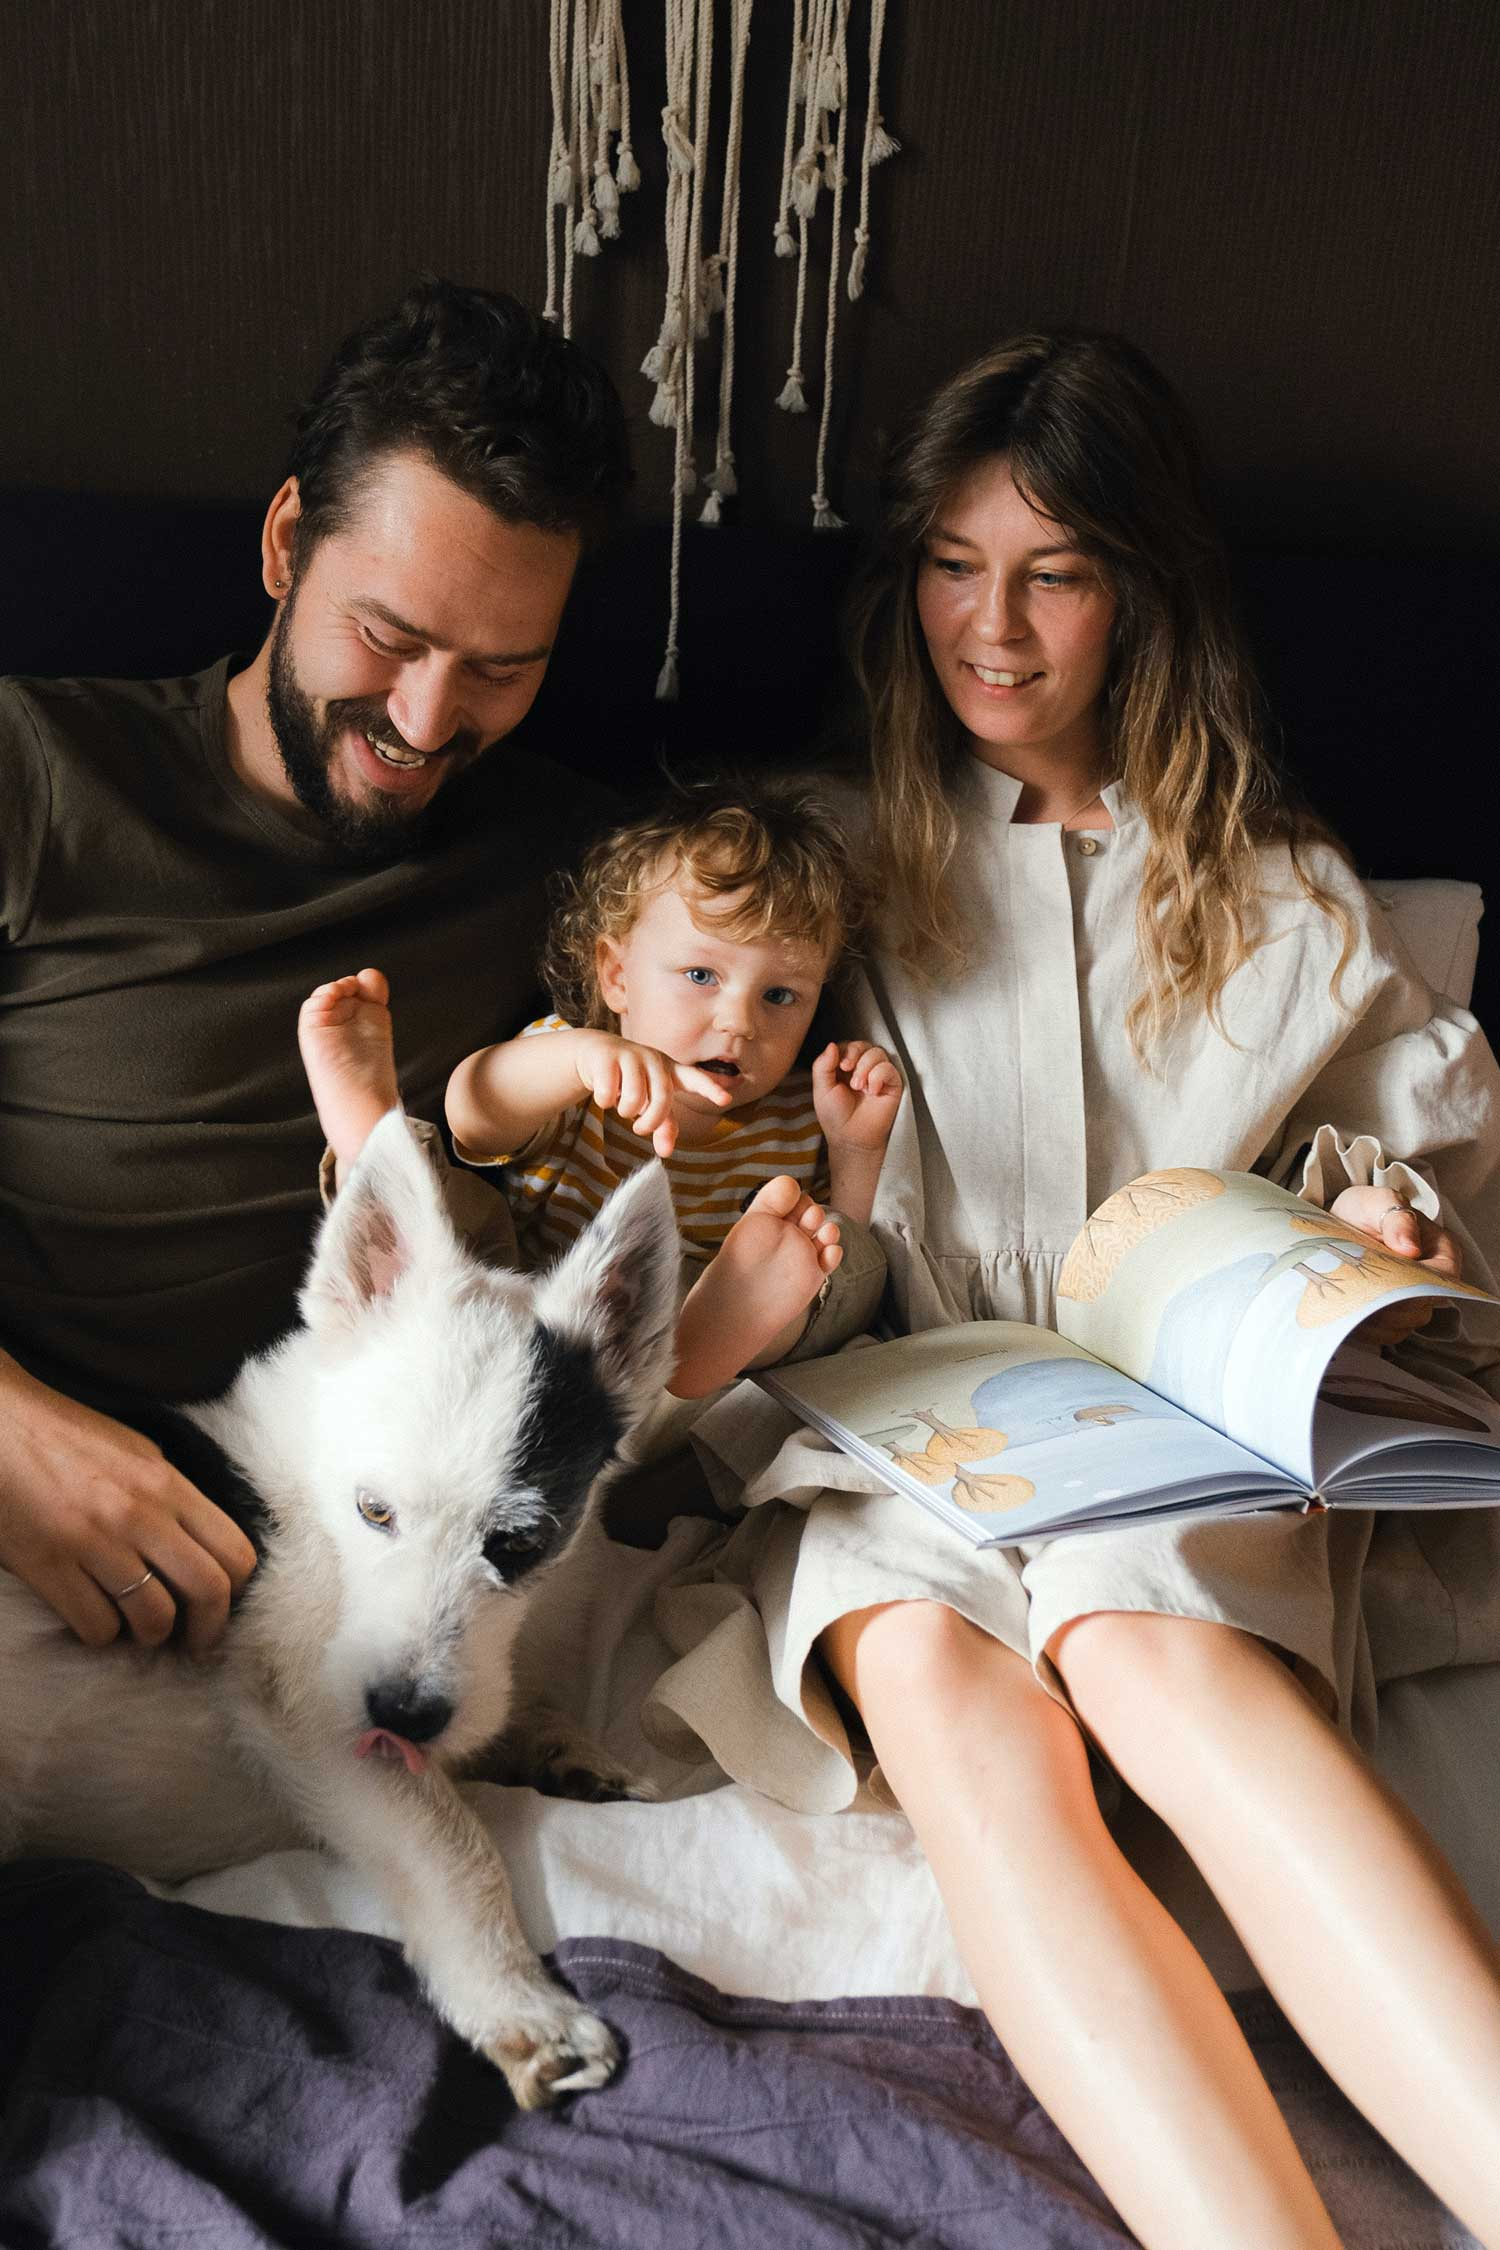 An image of a family with a PSD dog